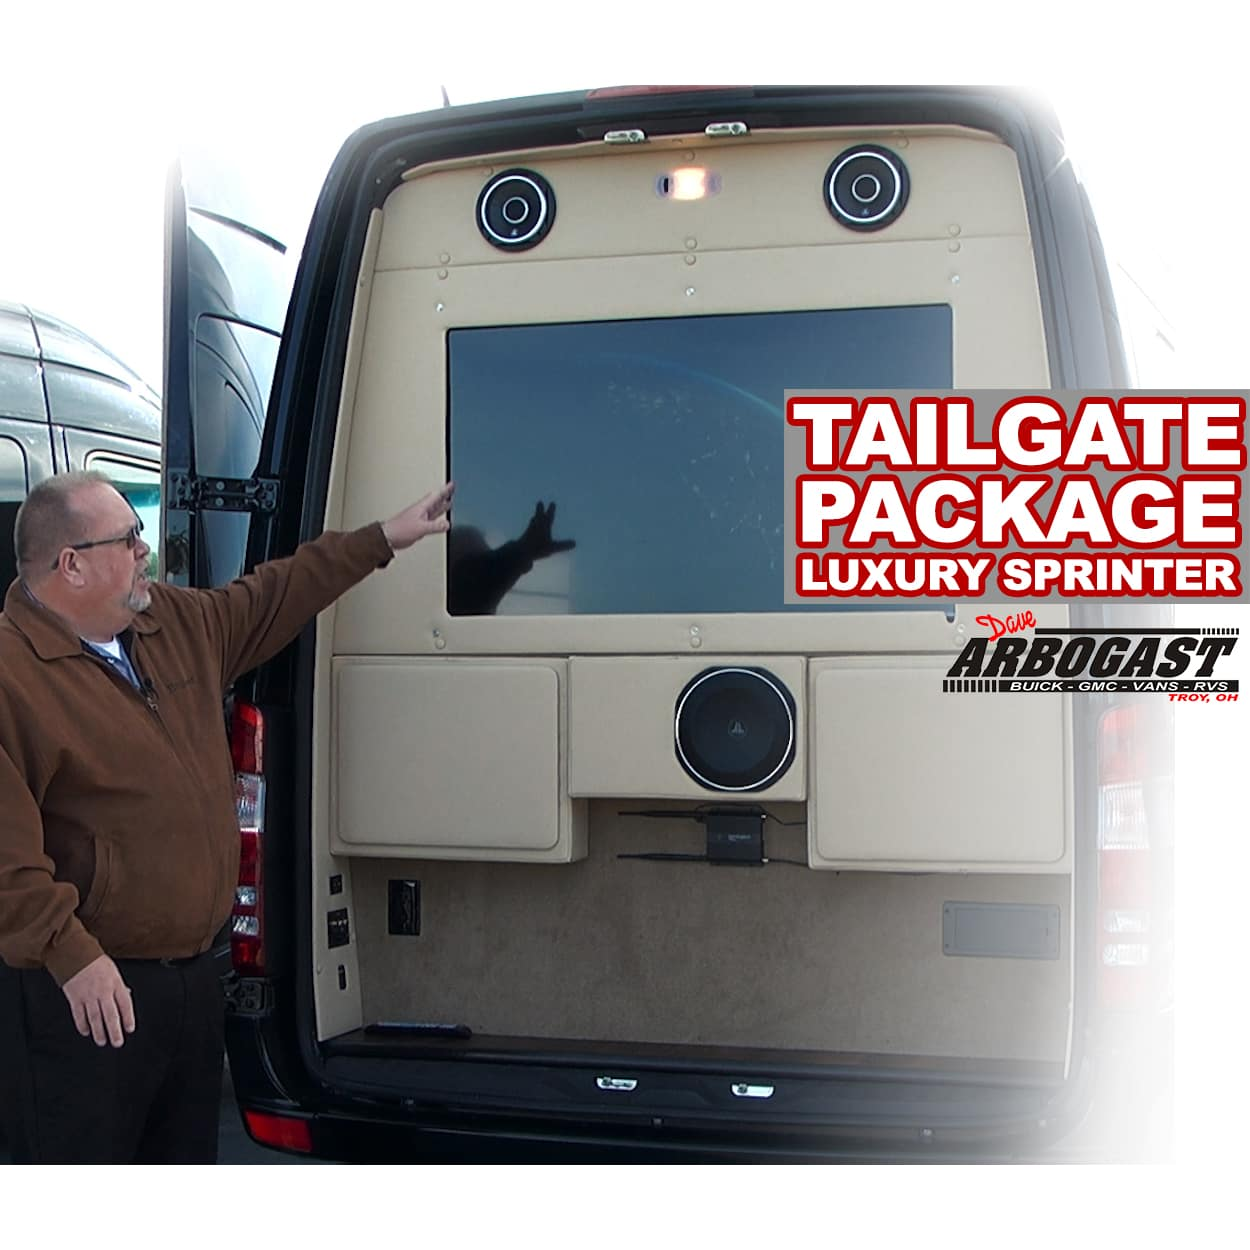 hight resolution of luxury sprinter vans at dave arbogast